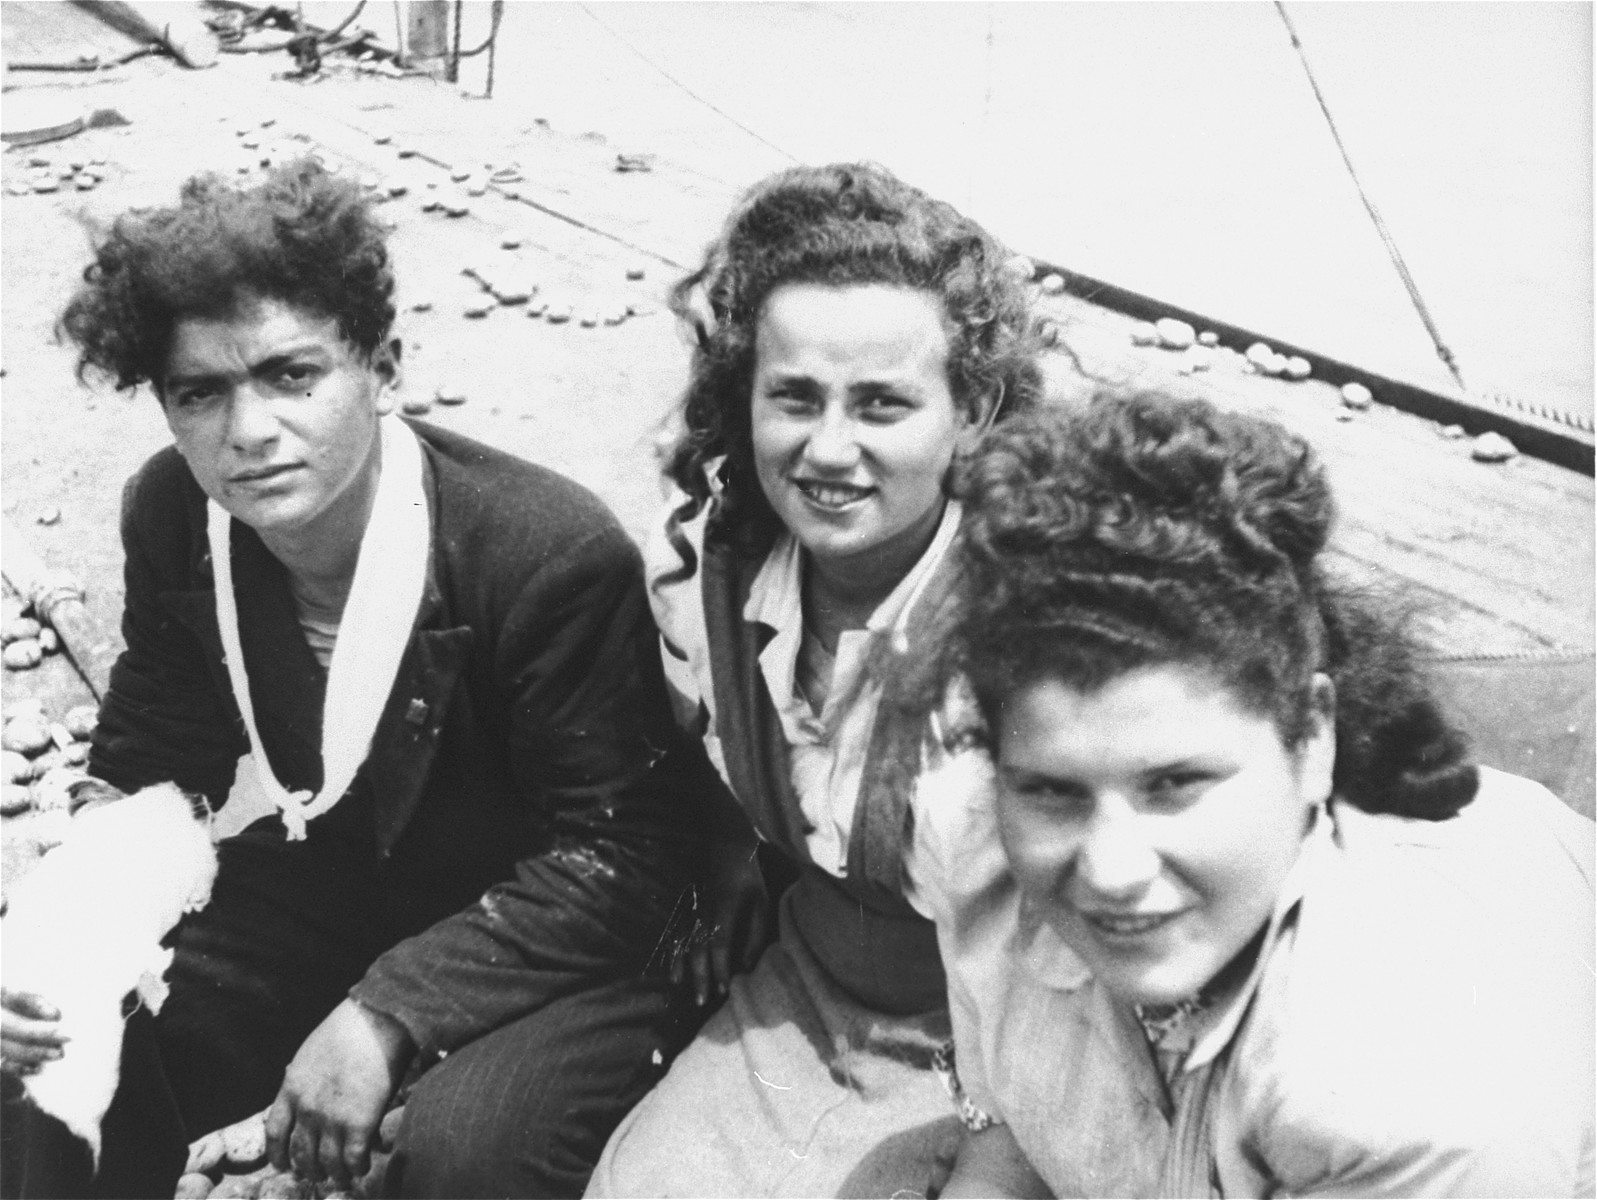 Three Jewish passengers, one of whom has been wounded, sit on the deck of the Exodus 1947.  Potatoes and other debris, used in the struggle with the British, lie on the deck behind them.